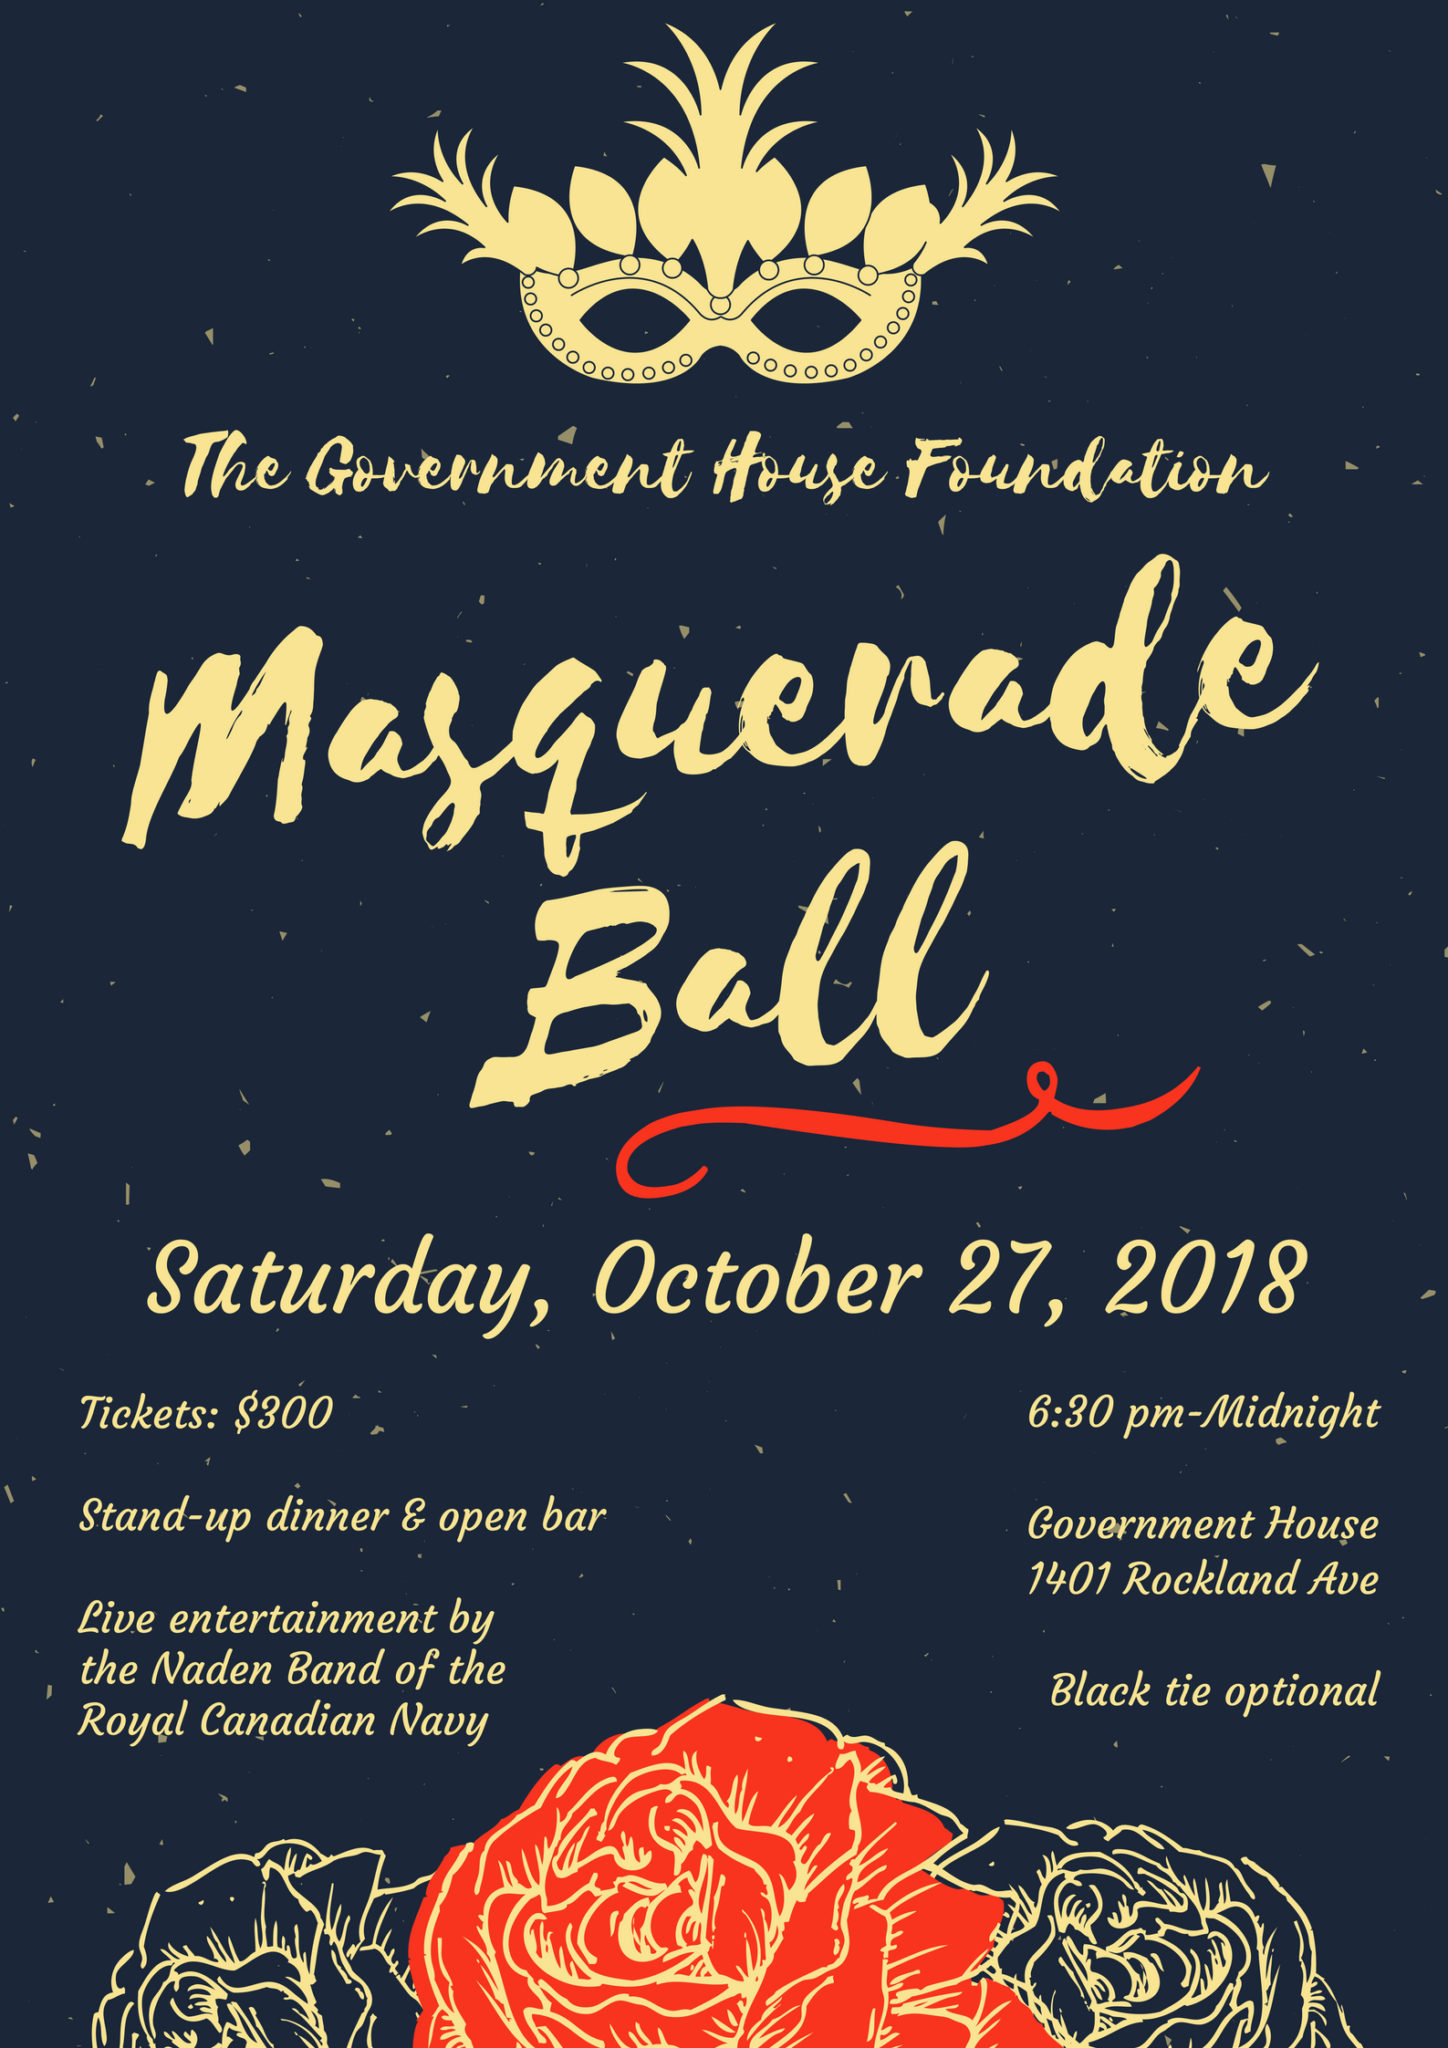 4984b30bf7 We are most pleased to extend an invitation to the Government House  Foundation Gala Ball